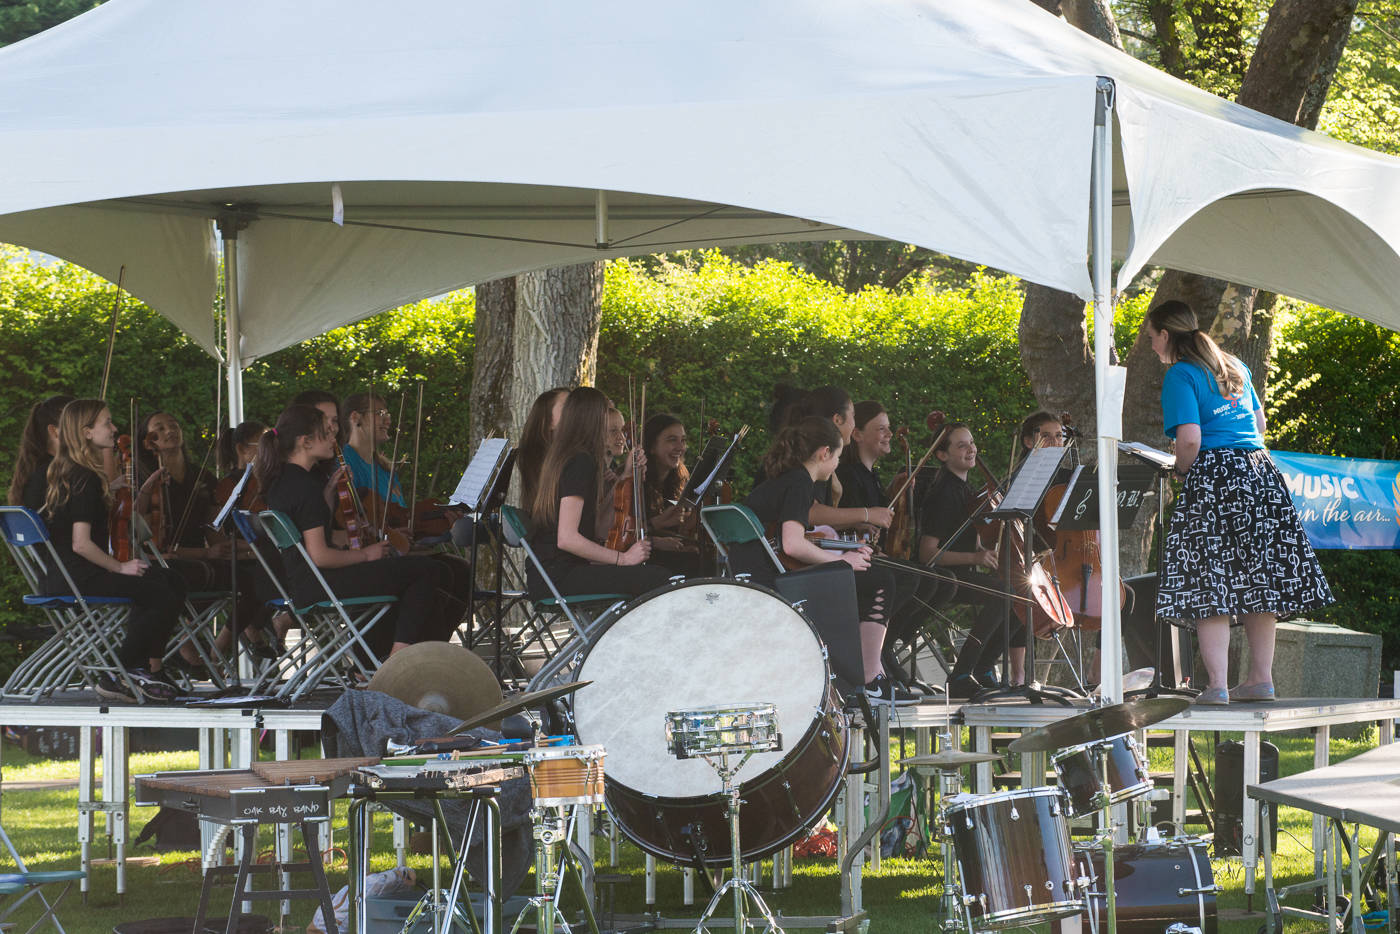 Monterey String Band at Willows Beach for Music in the Air, Music Everywhere. (Keri Coles/Oak Bay News)